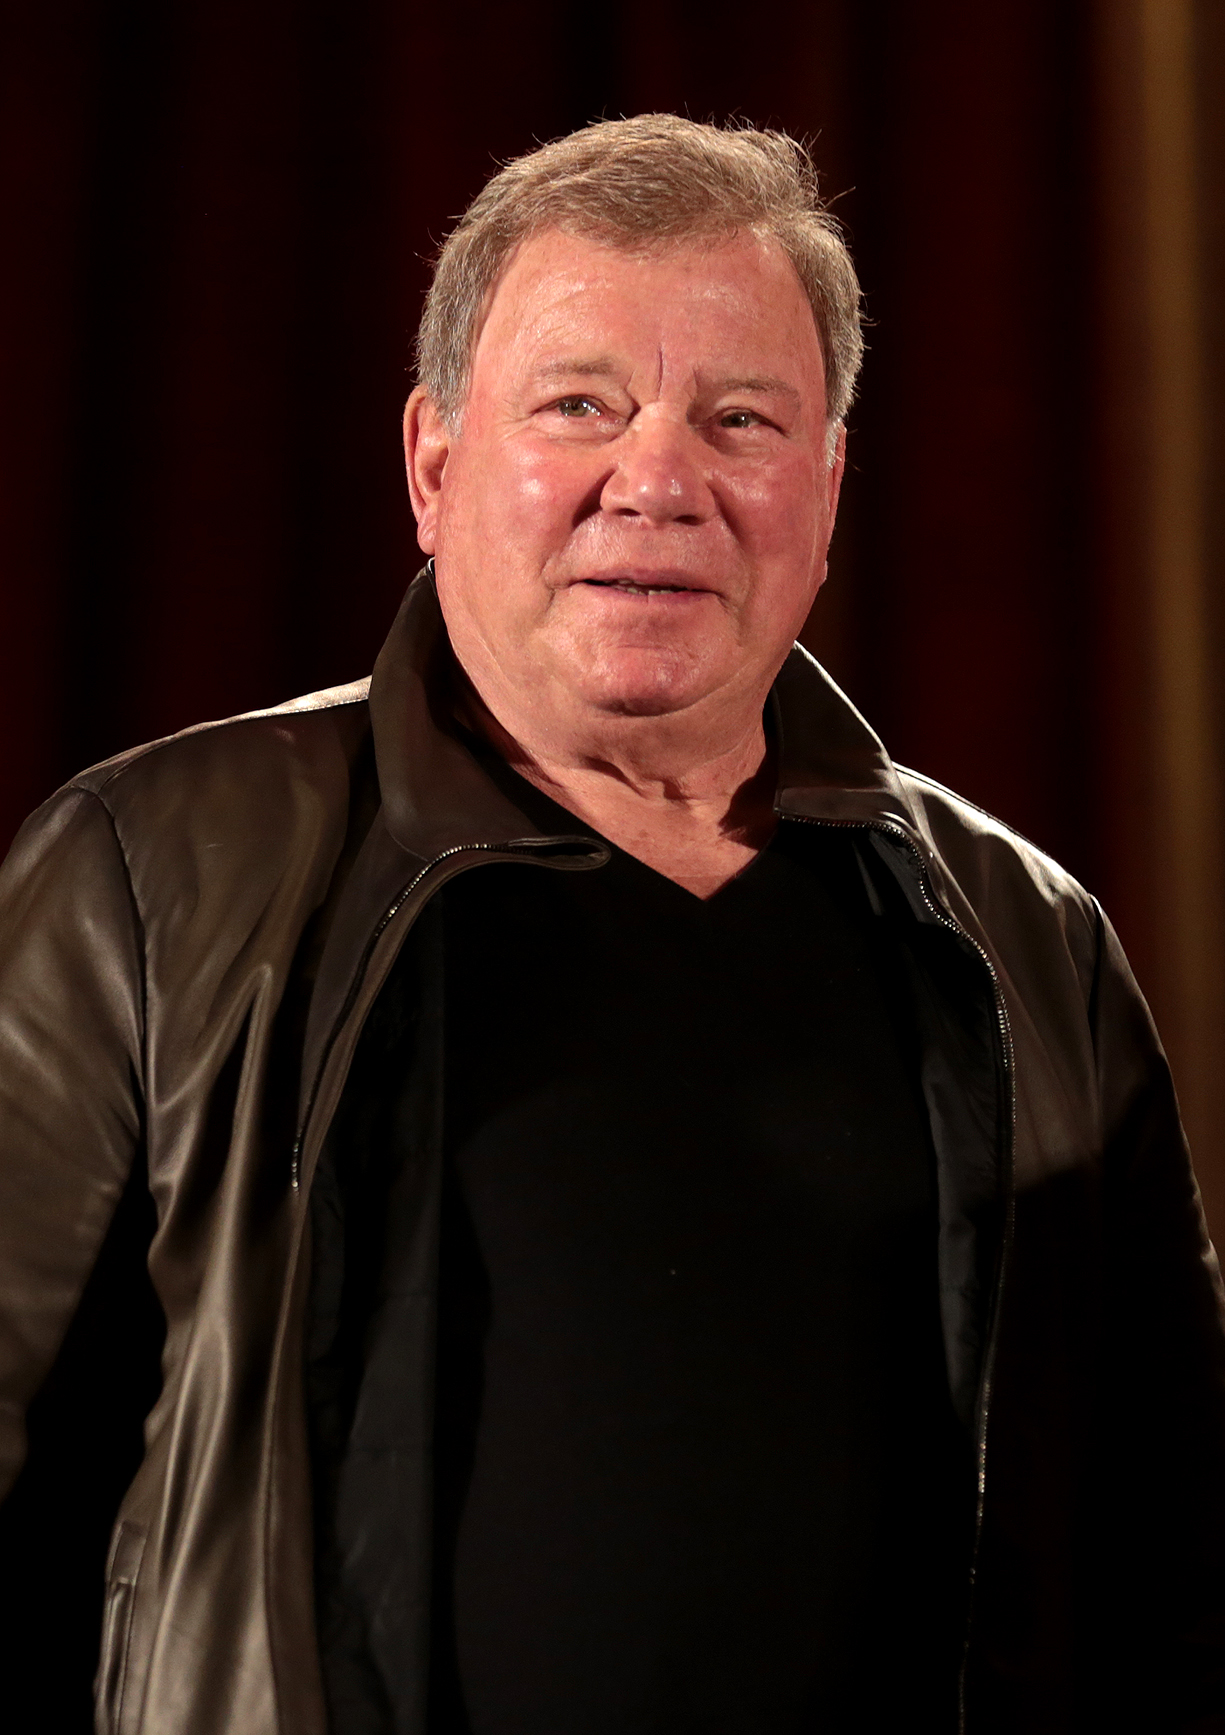 The 87-year old son of father (?) and mother(?) William Shatner in 2018 photo. William Shatner earned a  million dollar salary - leaving the net worth at 100 million in 2018